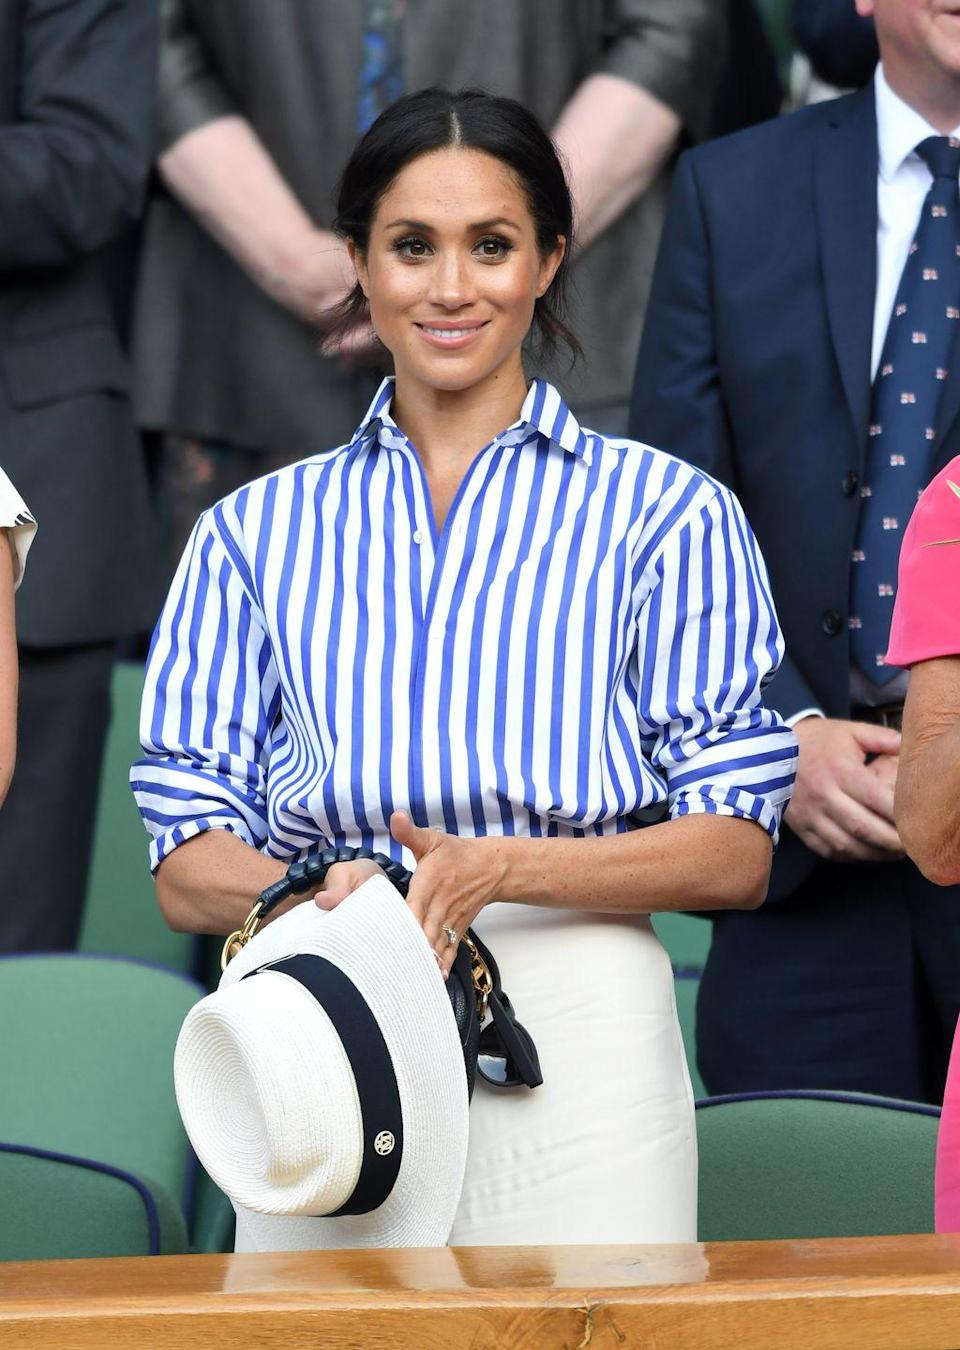 <p>The Duchess of Sussex wore a chic blue and white striped button-down at the famed Wimbledon Tennis Championships. She paired the look with an elegant white fedora. </p>